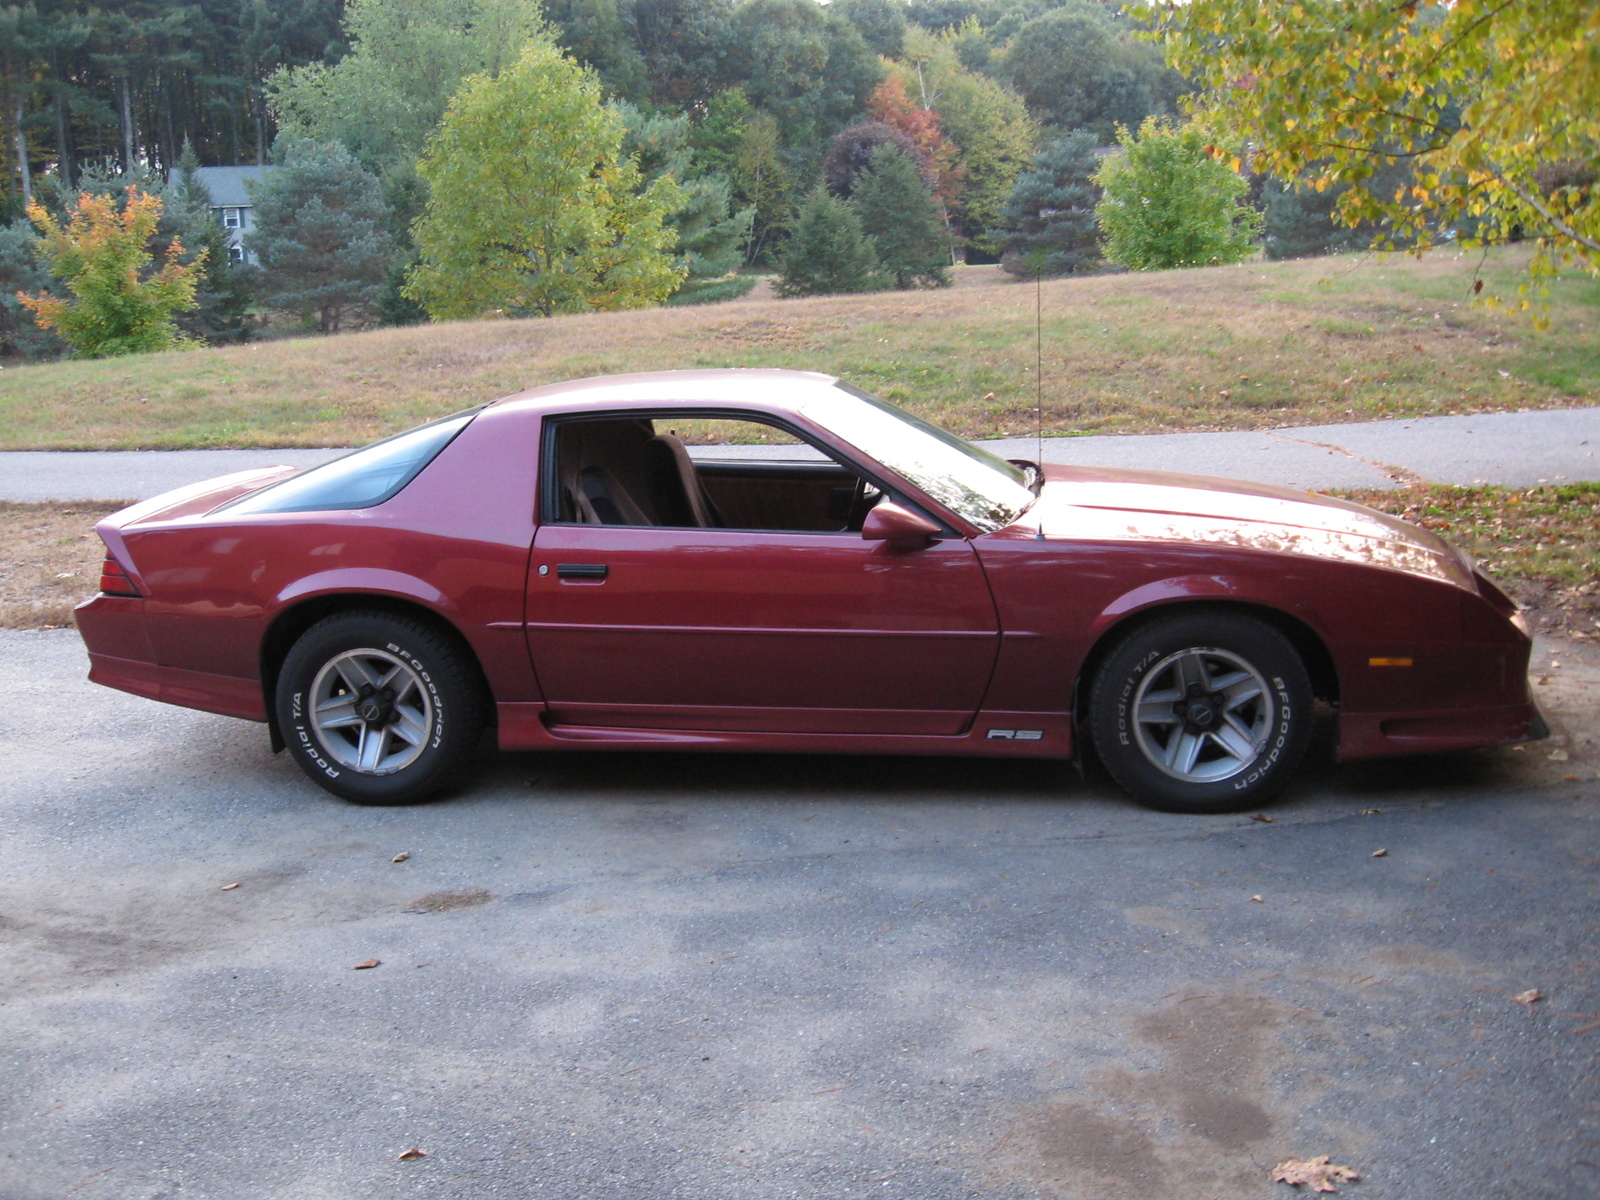 Chevrolet Camaro SS 350 10 additionally Ryan Villopoto Future also 04 moreover 231263318675 in addition Roadside Find A Laid Out 1998 Chevy Truck. on 1998 chevy camaro